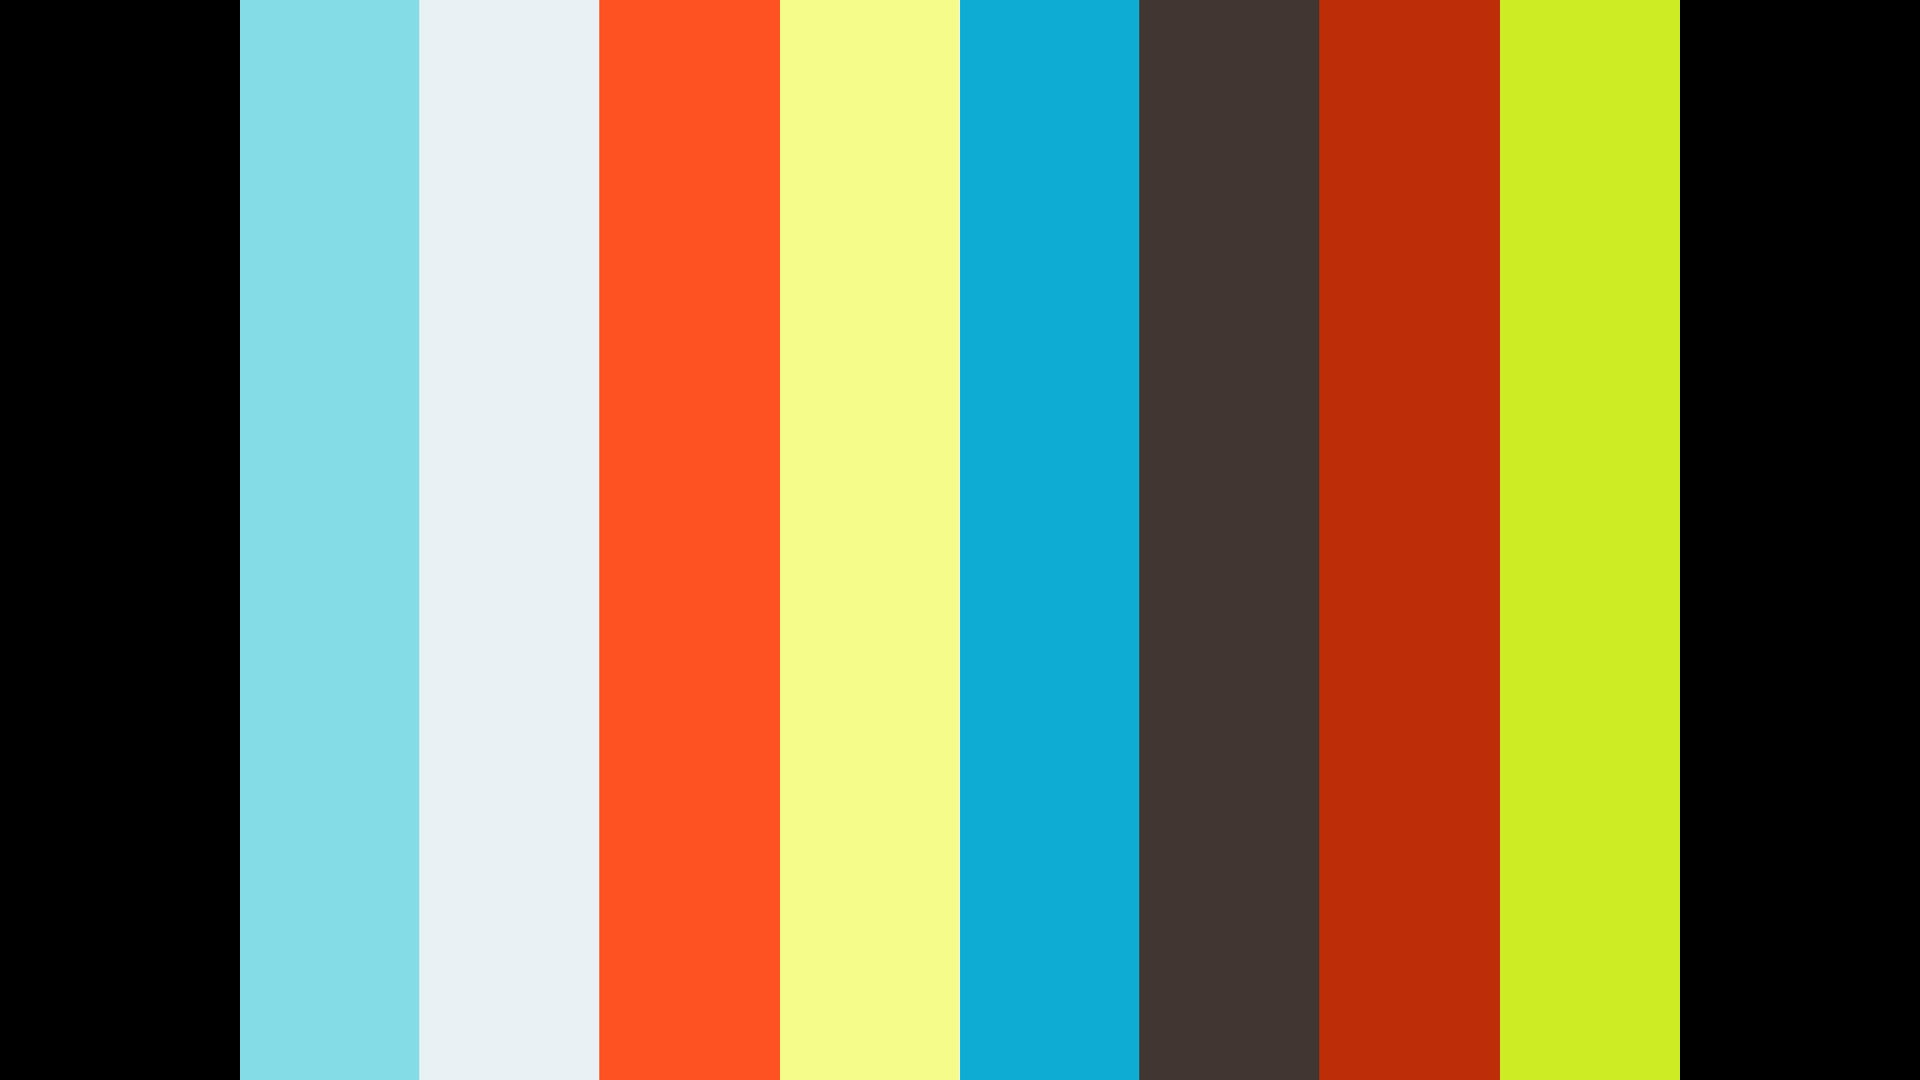 vid 20 Scorpion Stretch with Foot Touch.mov